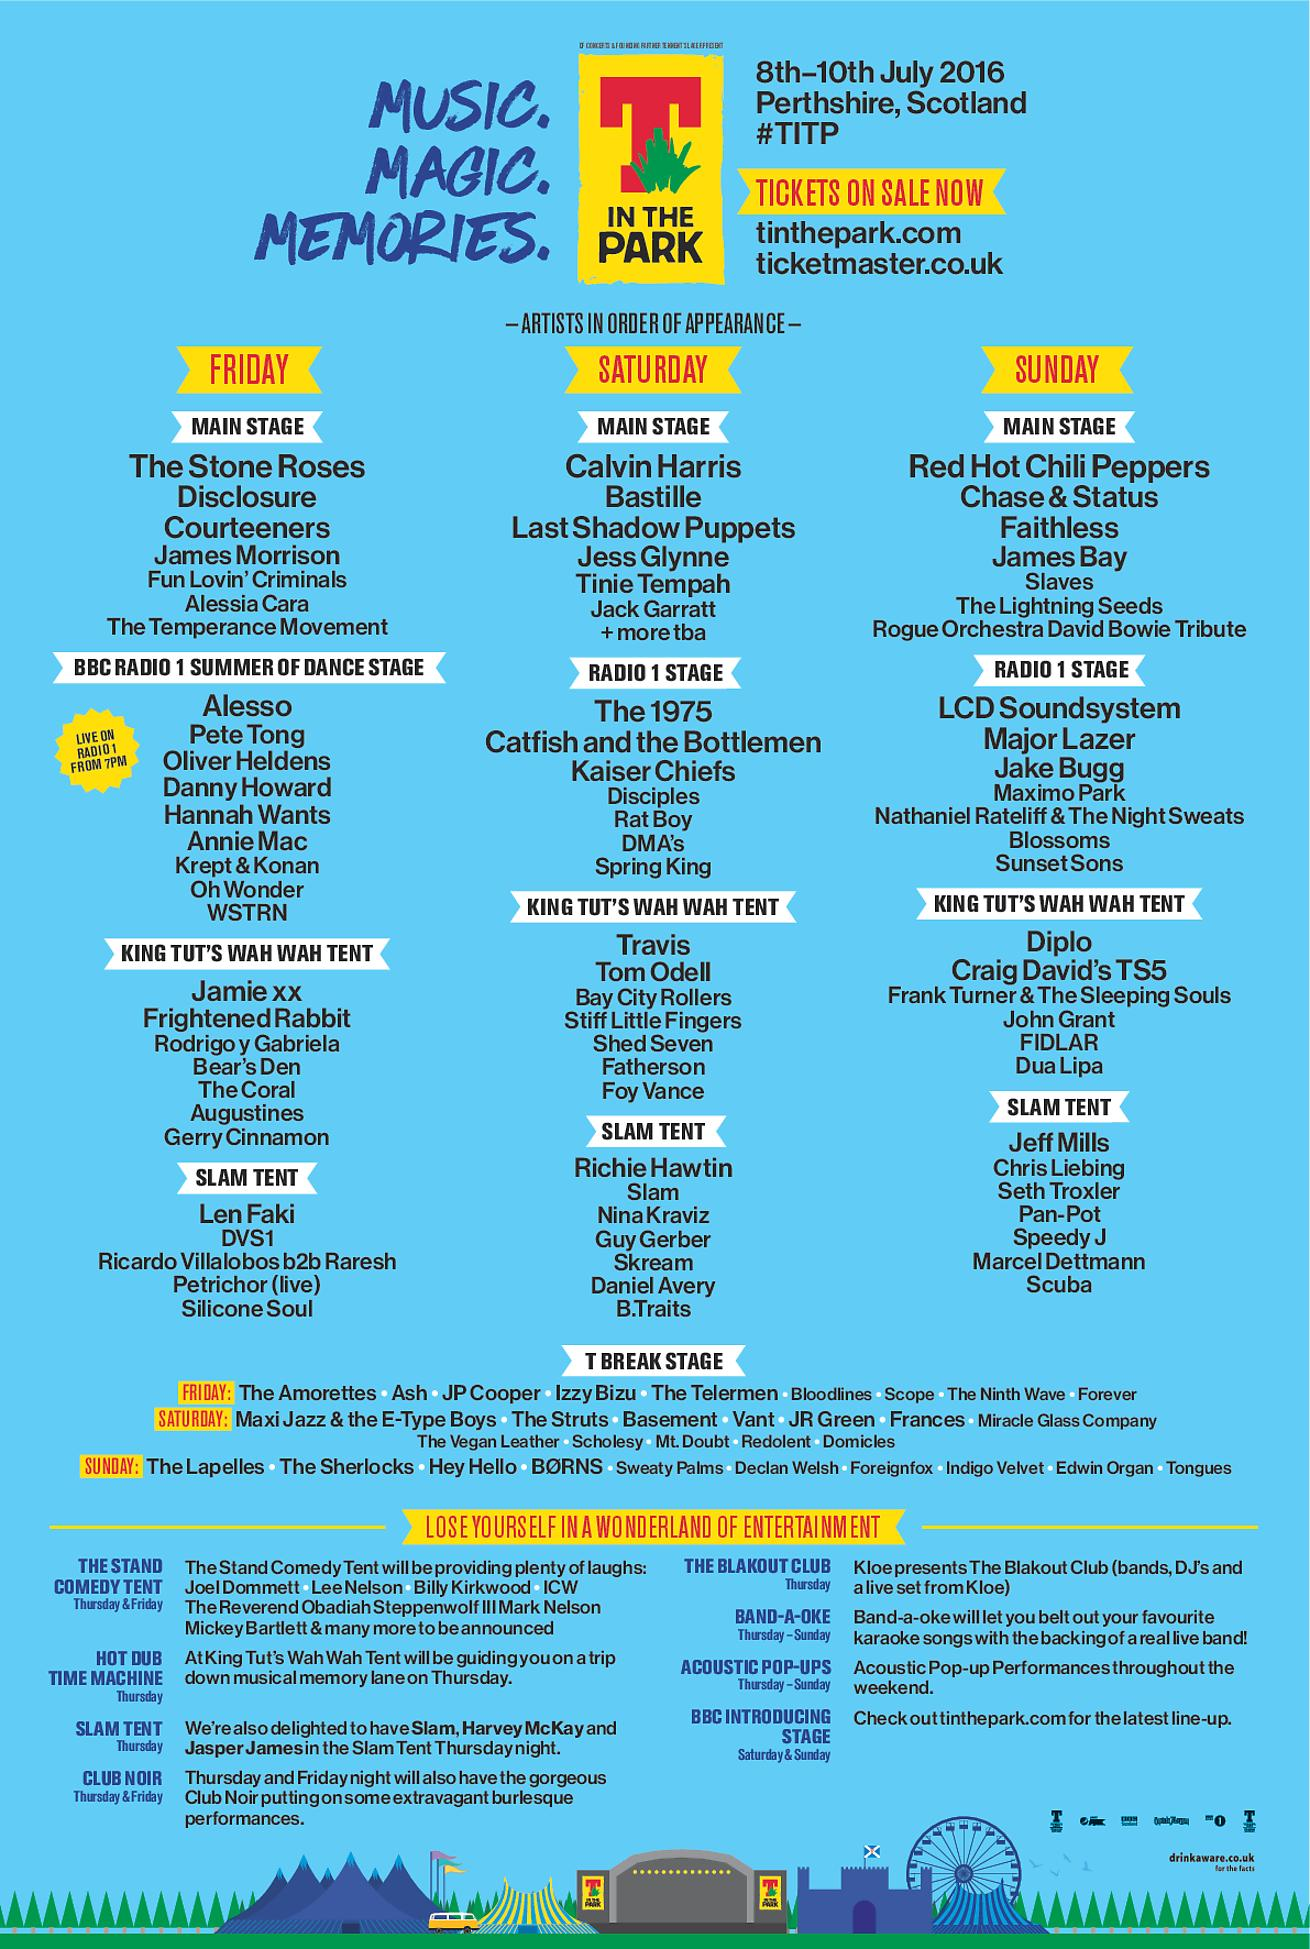 download → Calvin Harris, Faithless, Disclosure, Alesso, Pete Tong, Oliver Heldens, Annie Mac, Hanna Wants, etc - live at T In The Park 2016 (Scotland) - July 2016